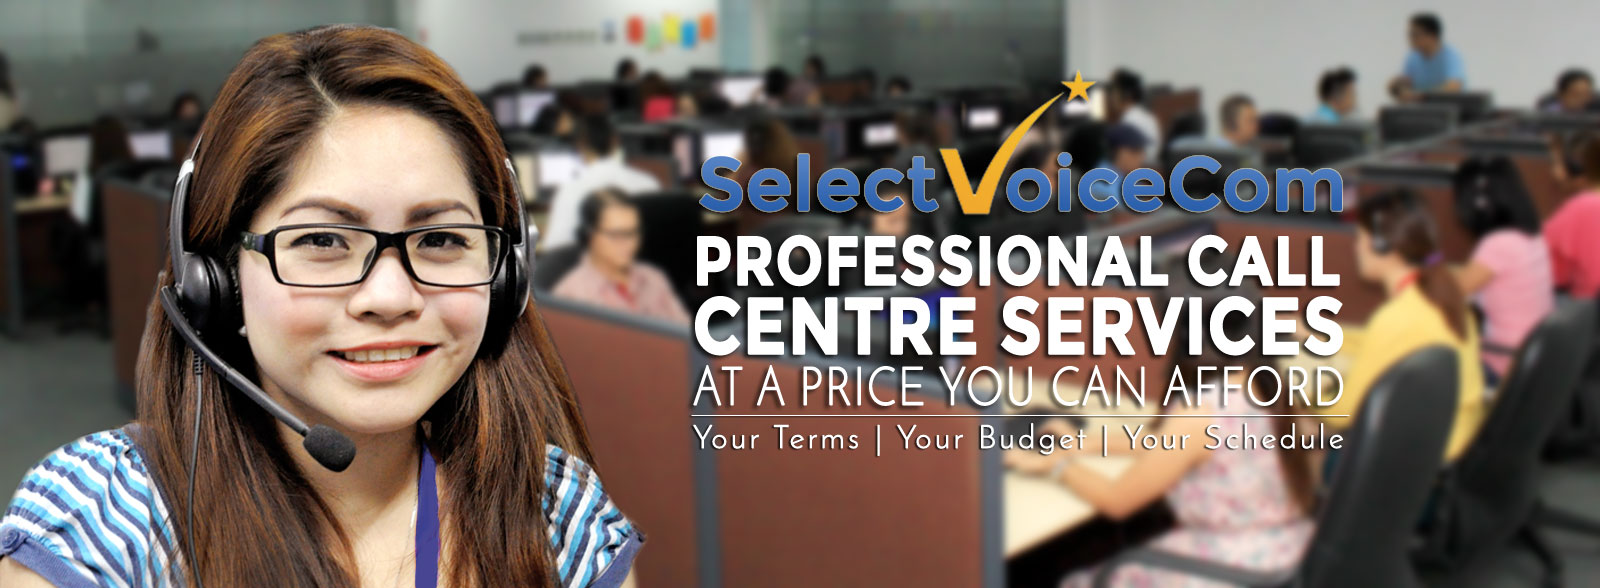 Professional Call Centre Services at a price you can afford.  Your terms, your budget, your schedule